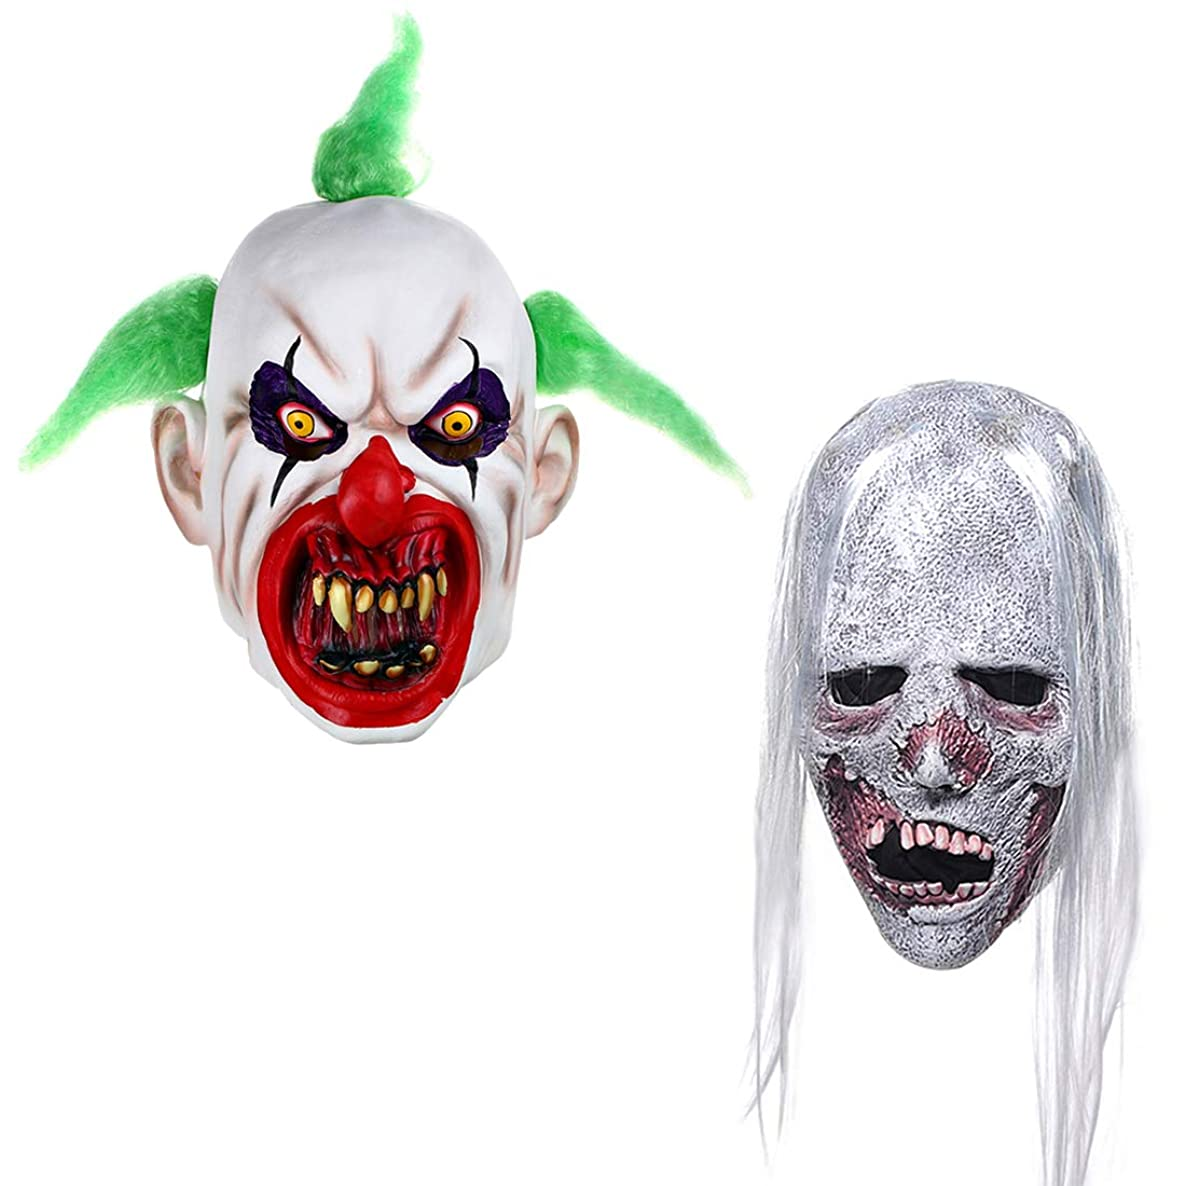 2 PCS Latex Halloween Party Props Scary Clown Mask for Adults and Horror Zombie Mask with Hair for Men